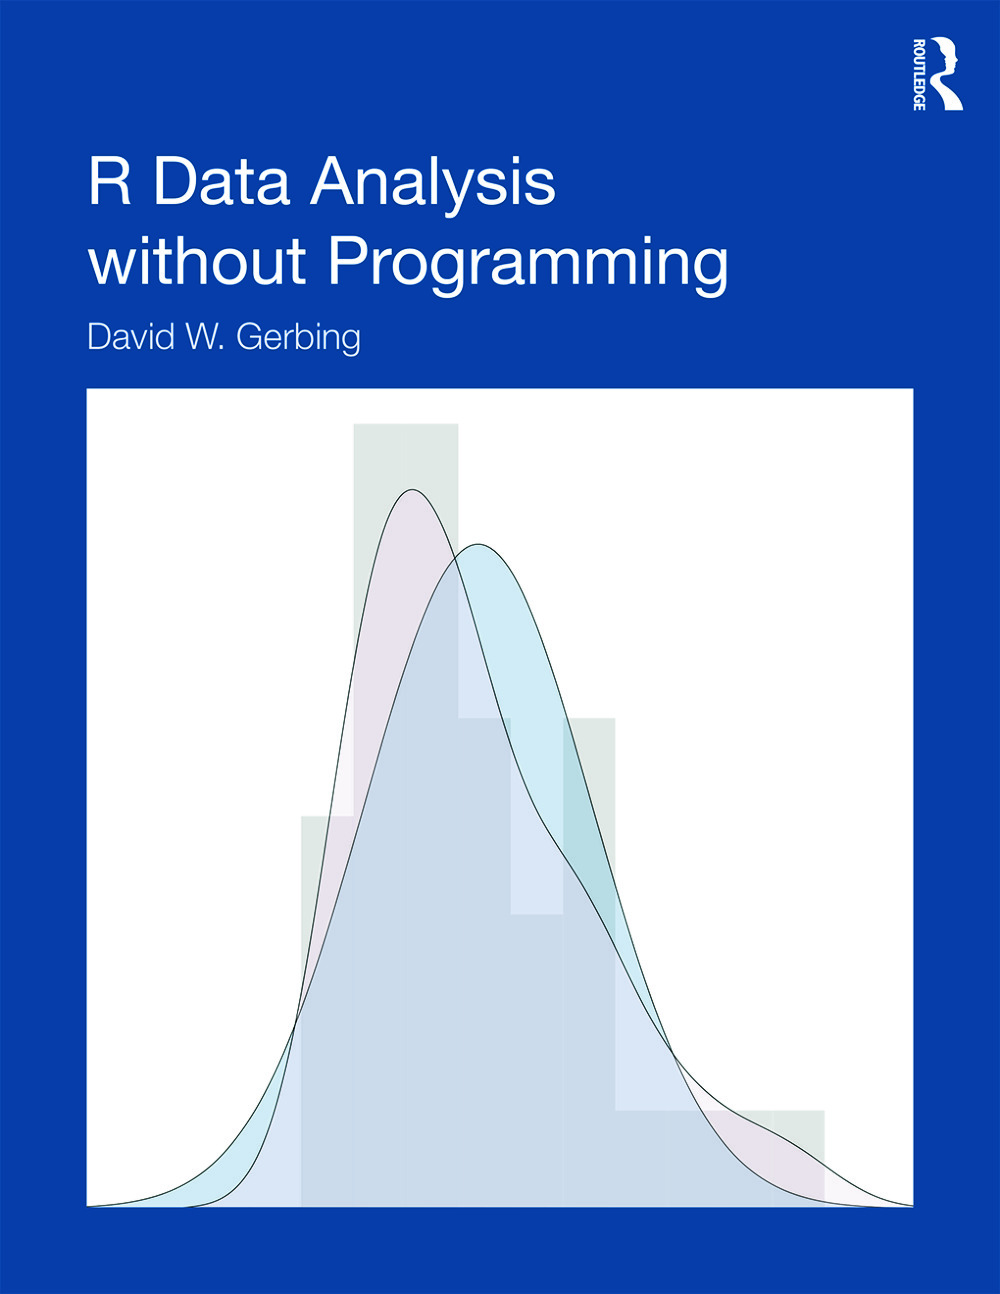 R Data Analysis without Programming